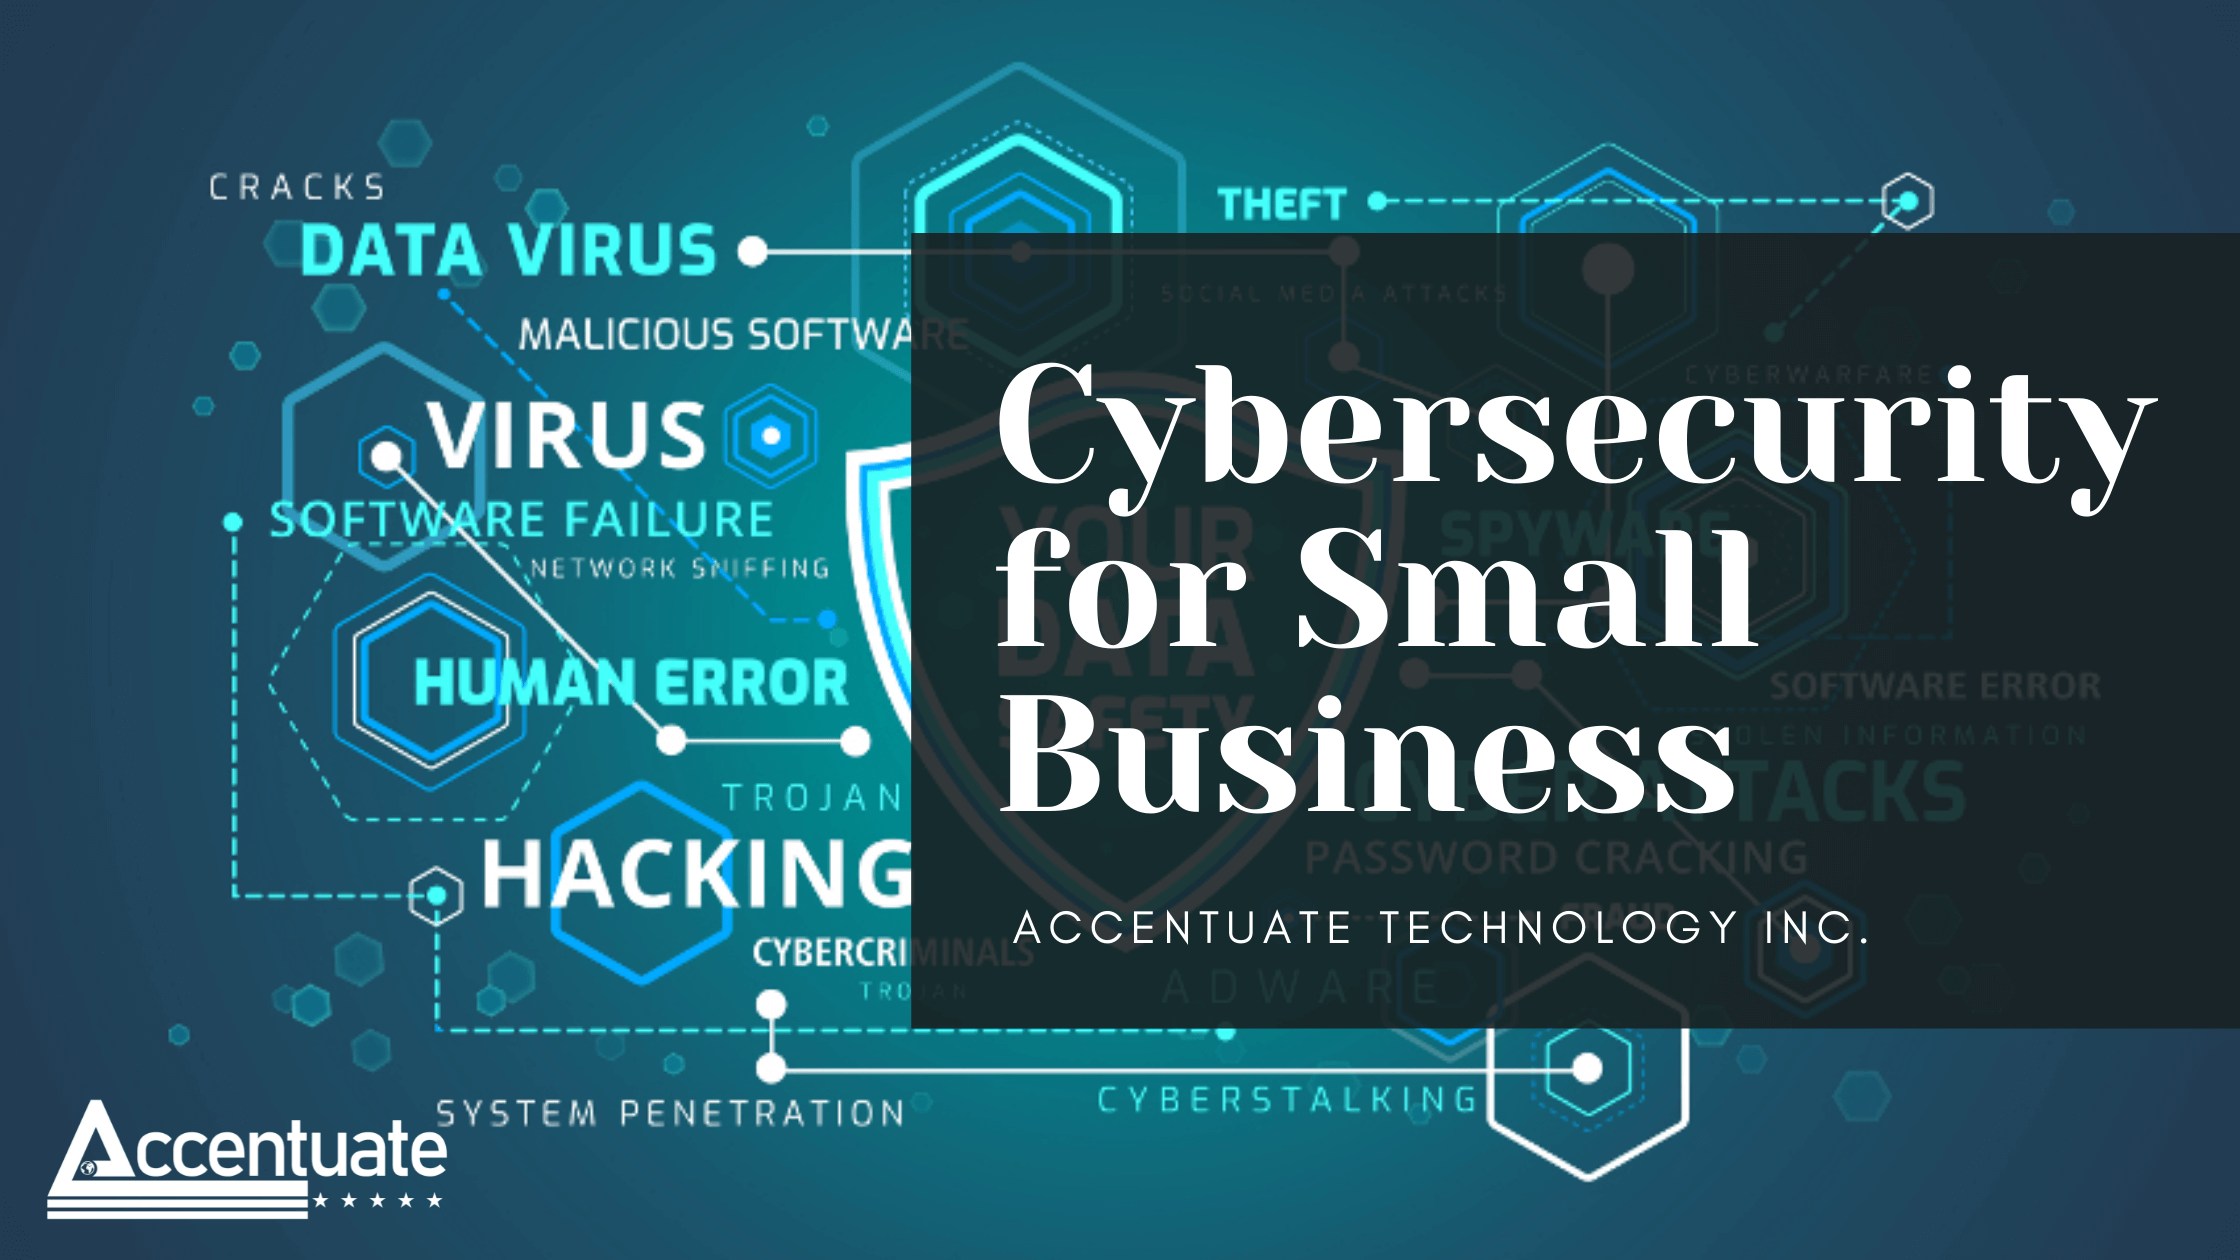 Cybersecurity for Small Business